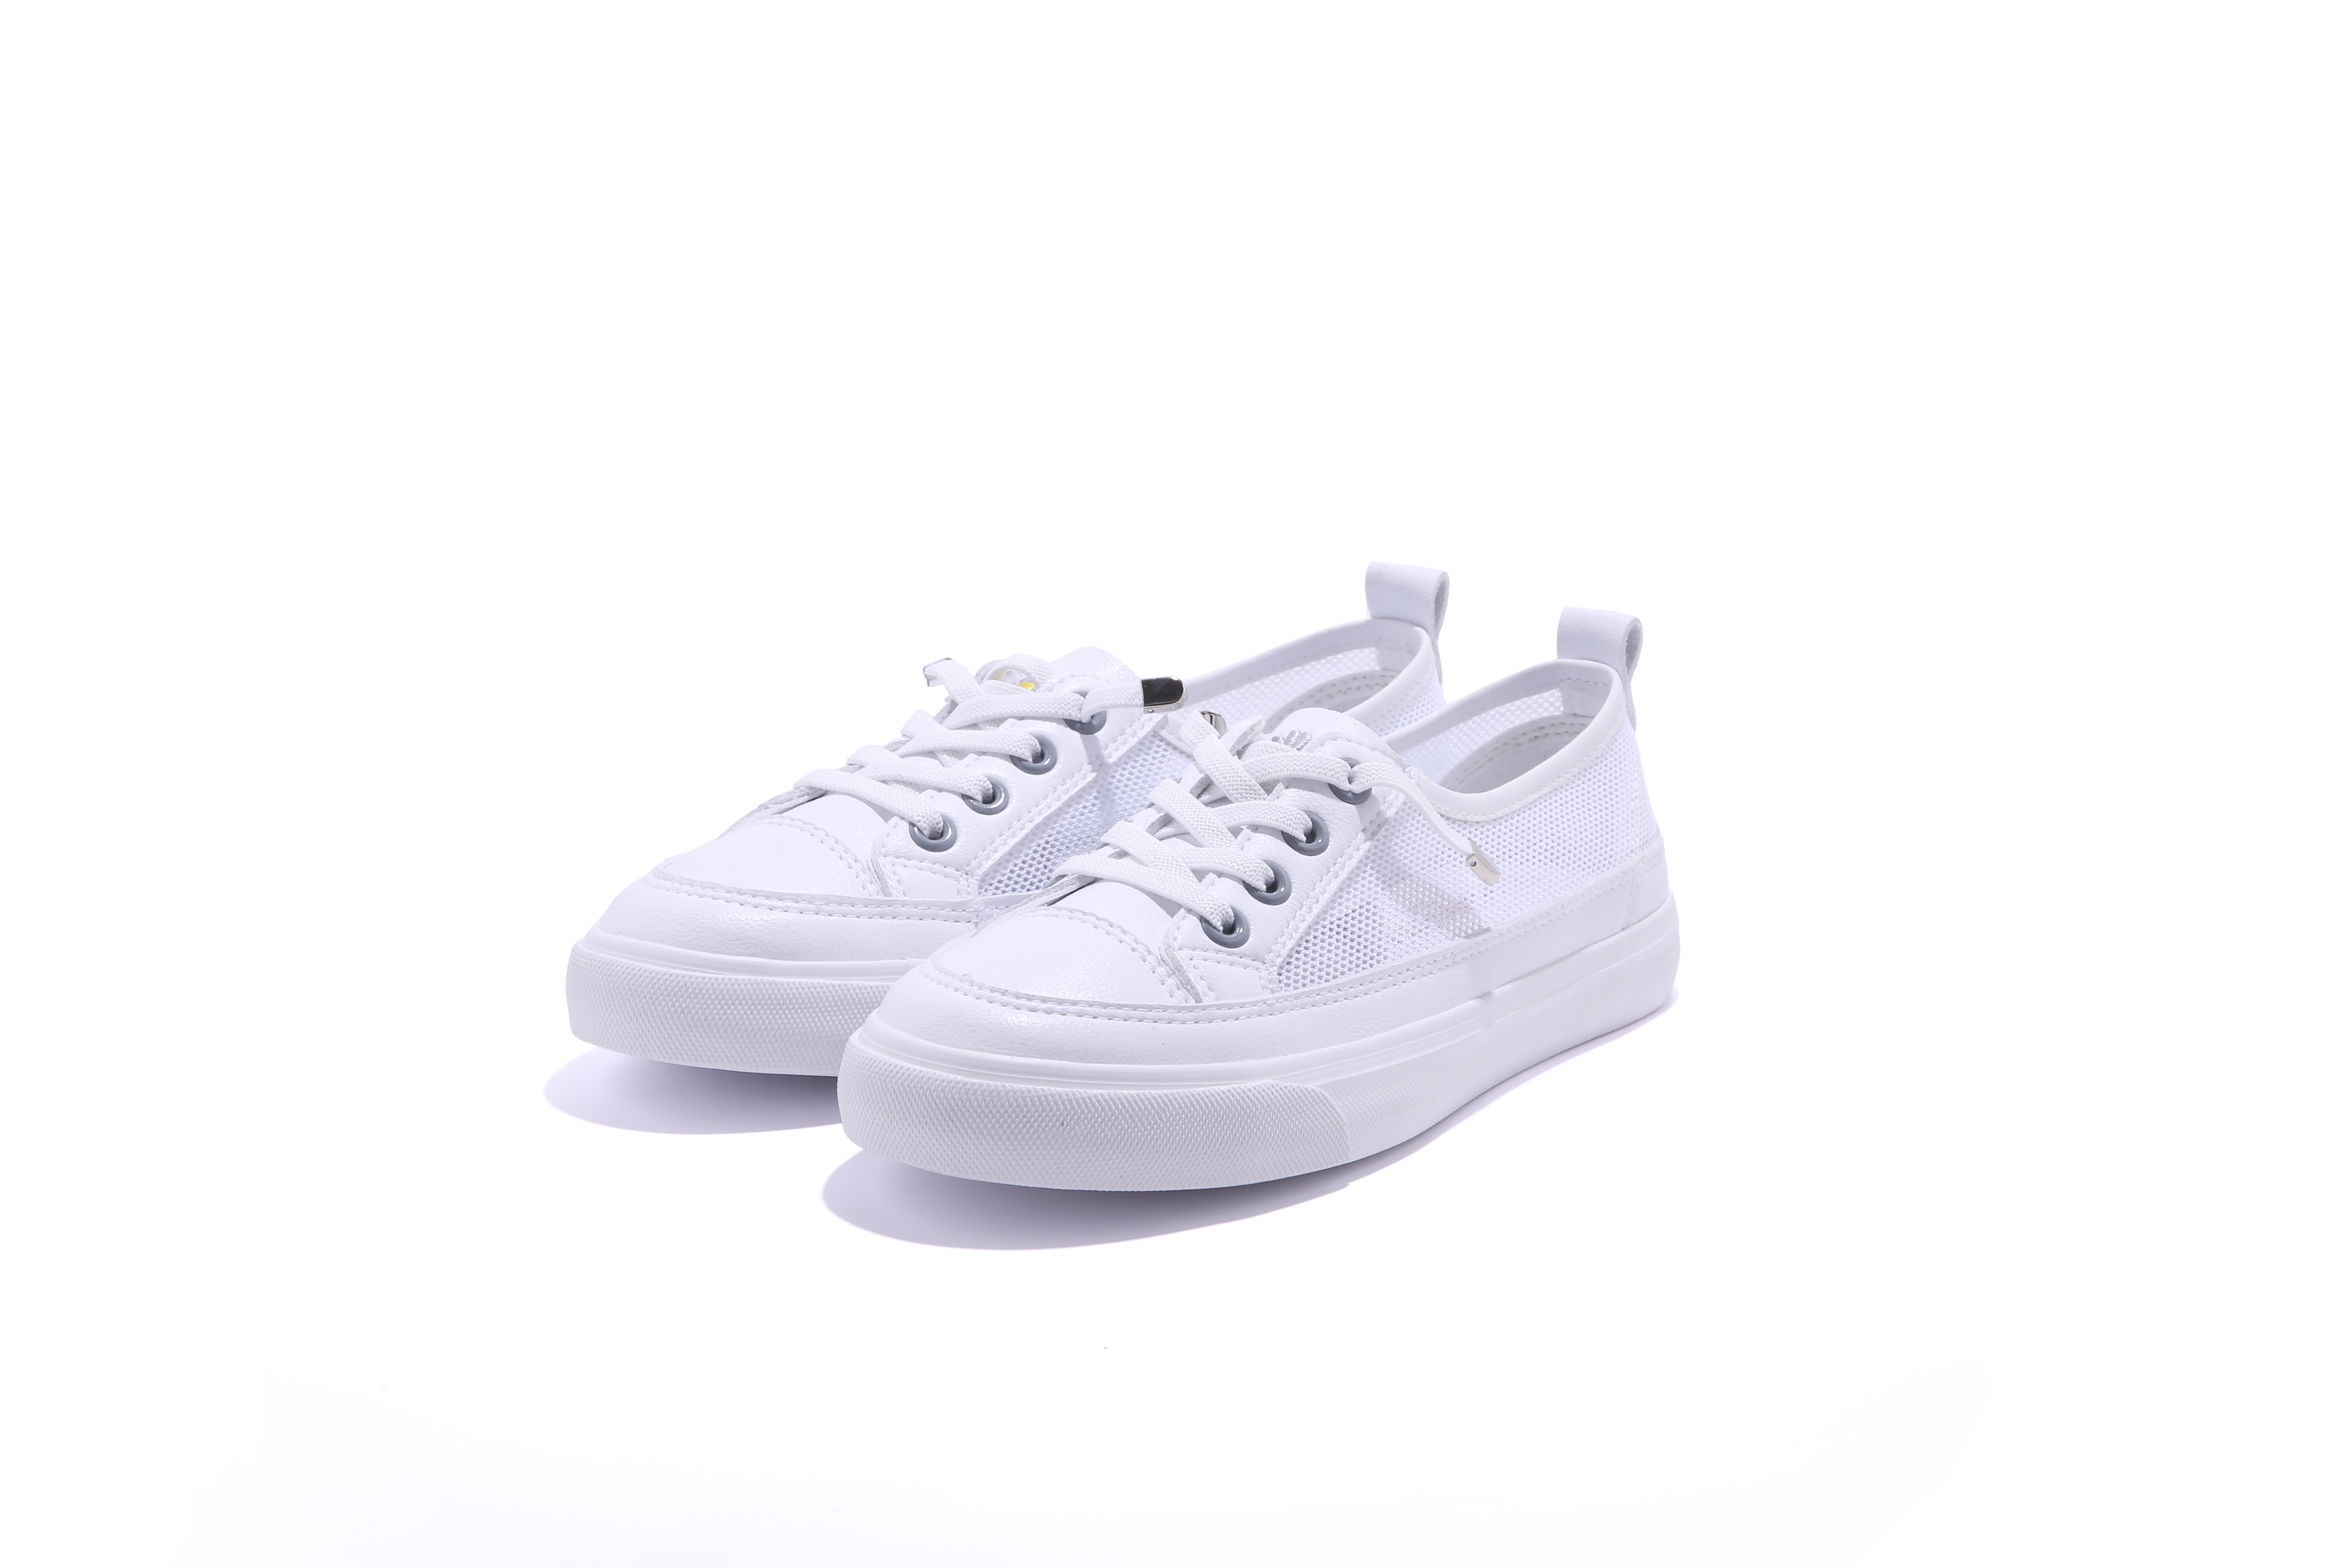 New Style 2020 Fashion Hot Sale Custom Woman Casual Shoes